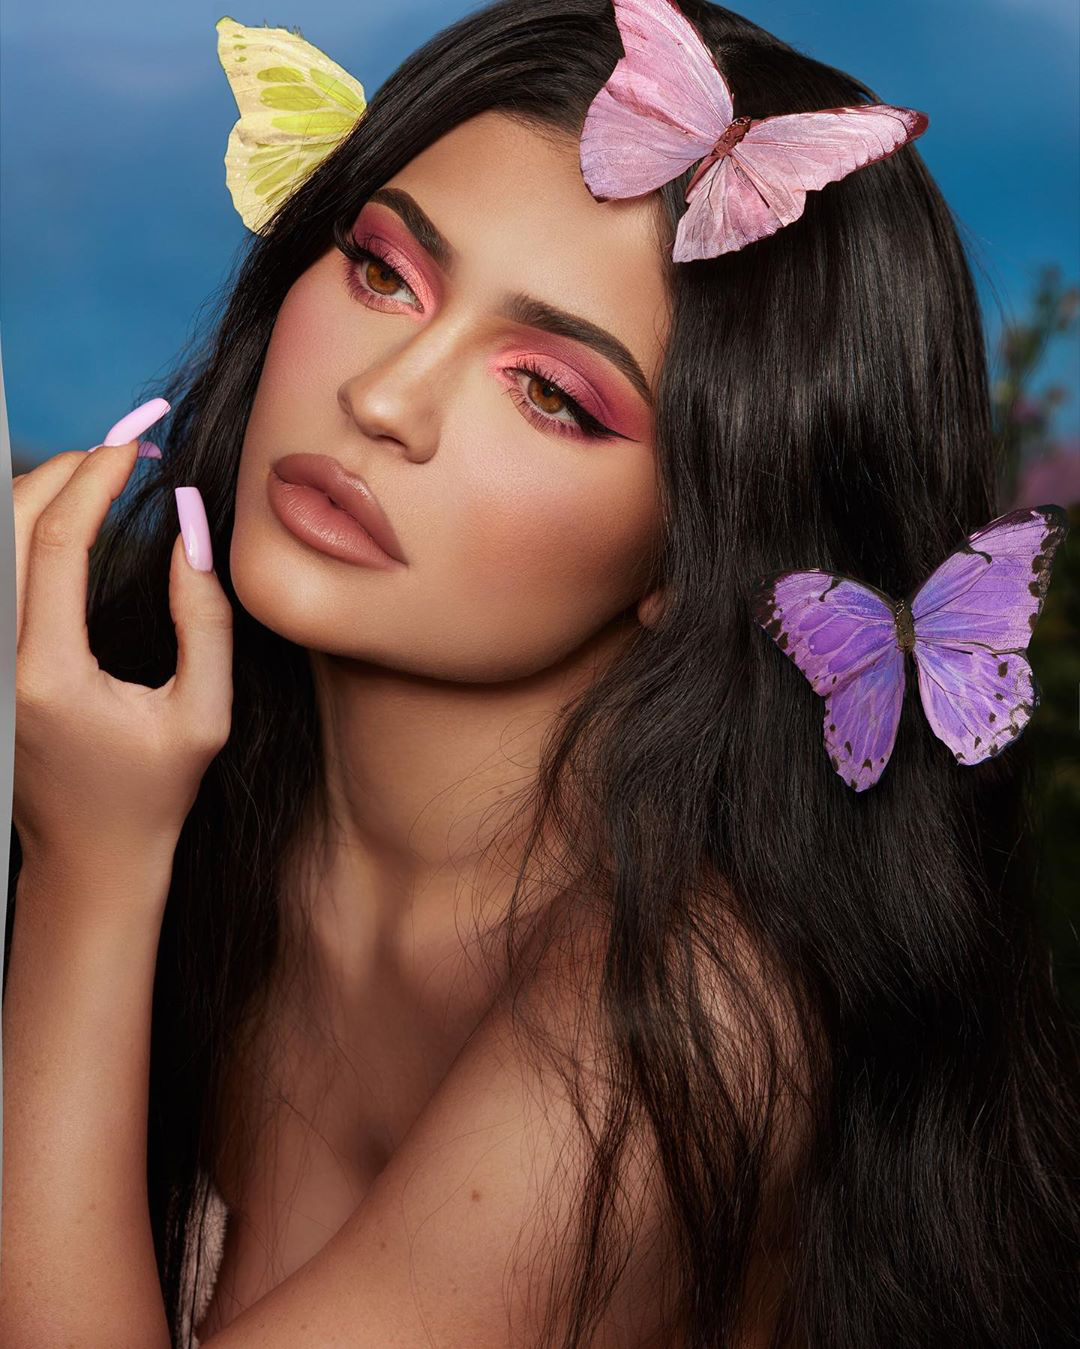 Kylie Jenner butterfly filter